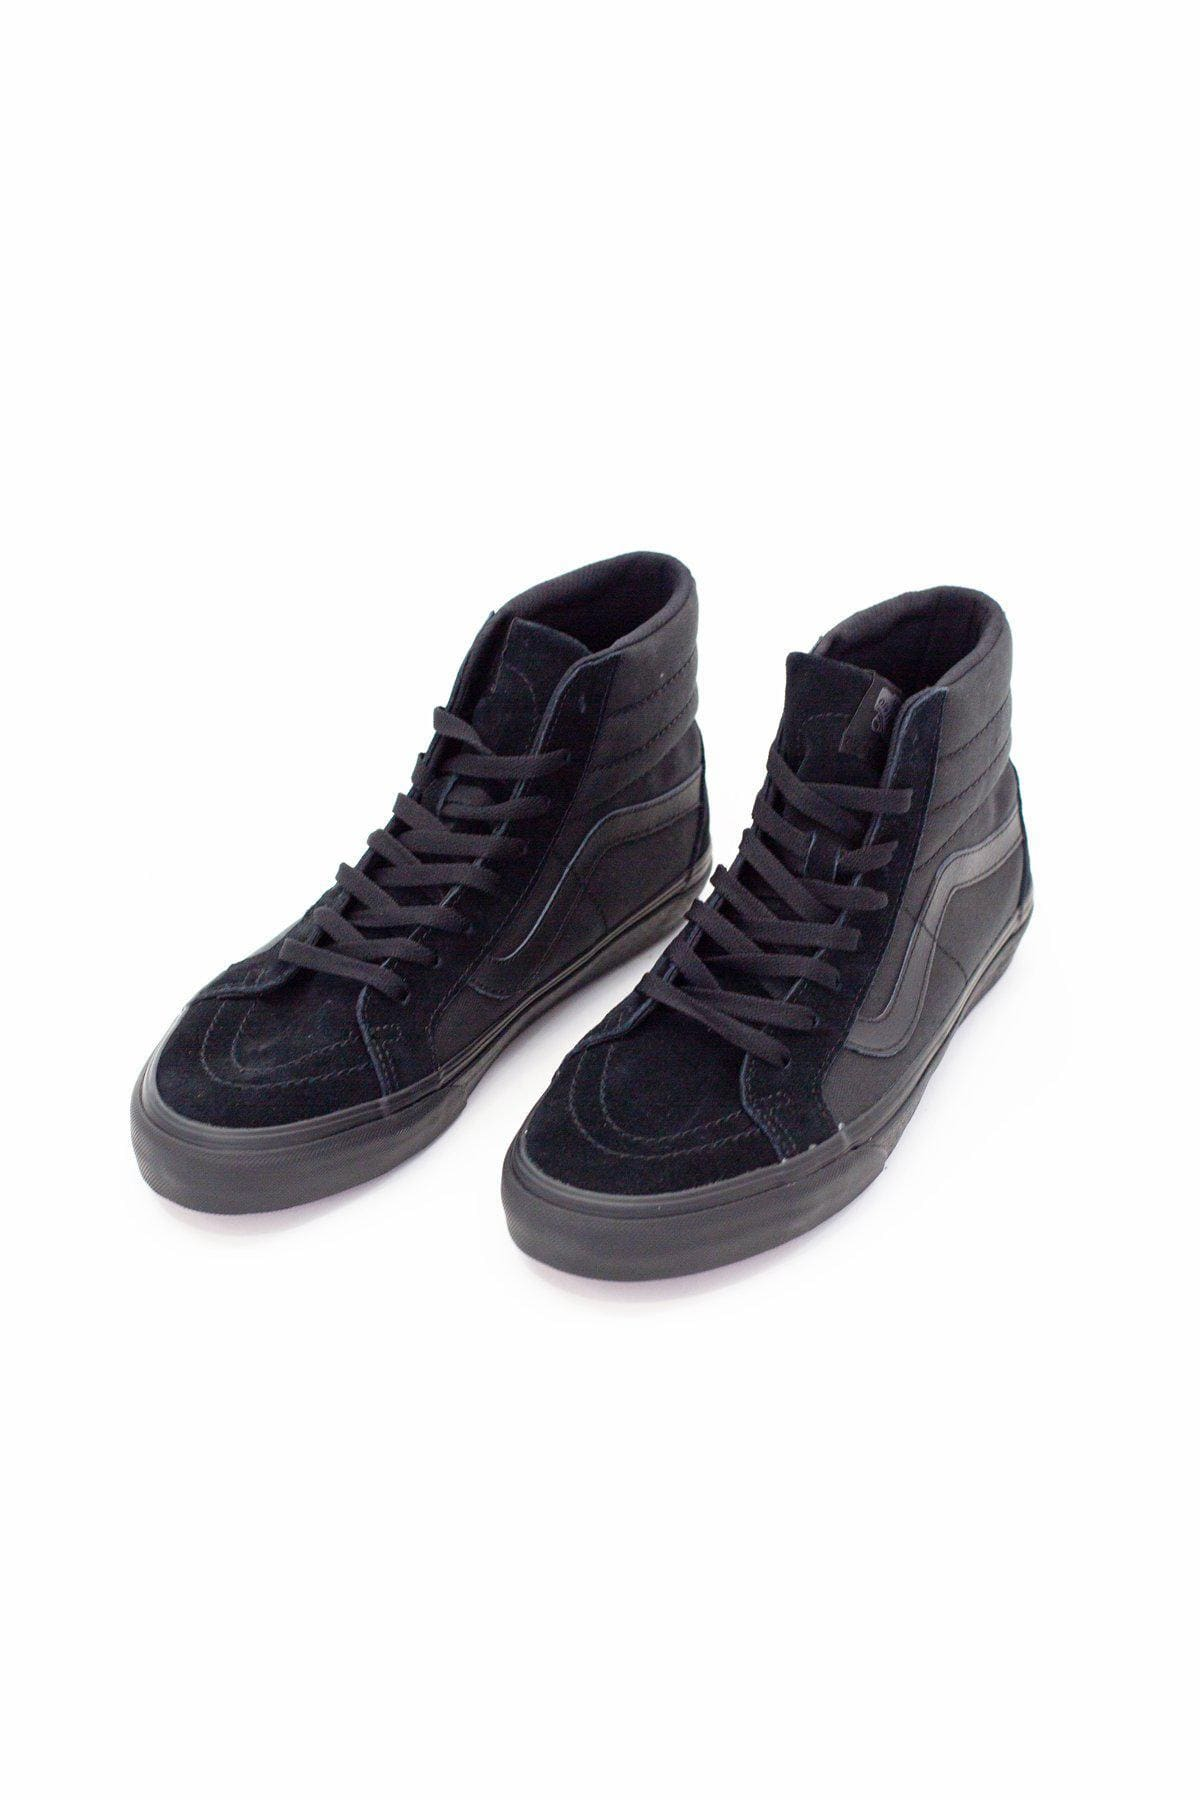 Vans Made For The Makers SK8-Hi Reissue UC d0e1589f5